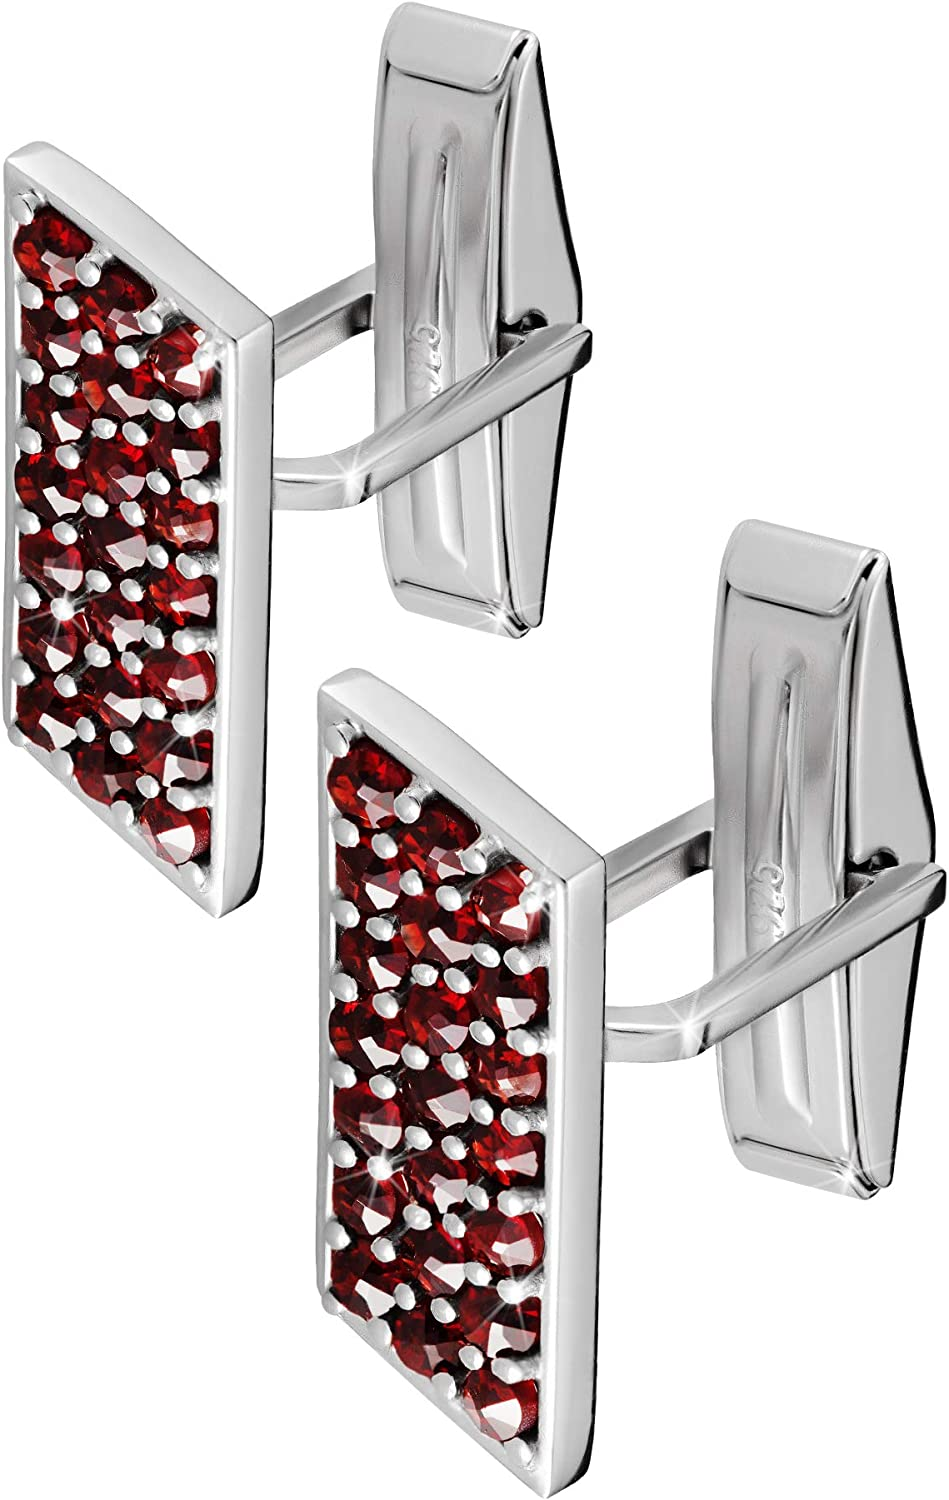 925 Sterling Silver Cufflinks Set for Men Luxury Handmade Designer Cuff Links with Red Bohemian Garnet Stones Ideal for Weddings Great Gift for Fathers Groomsmen /& Best Man